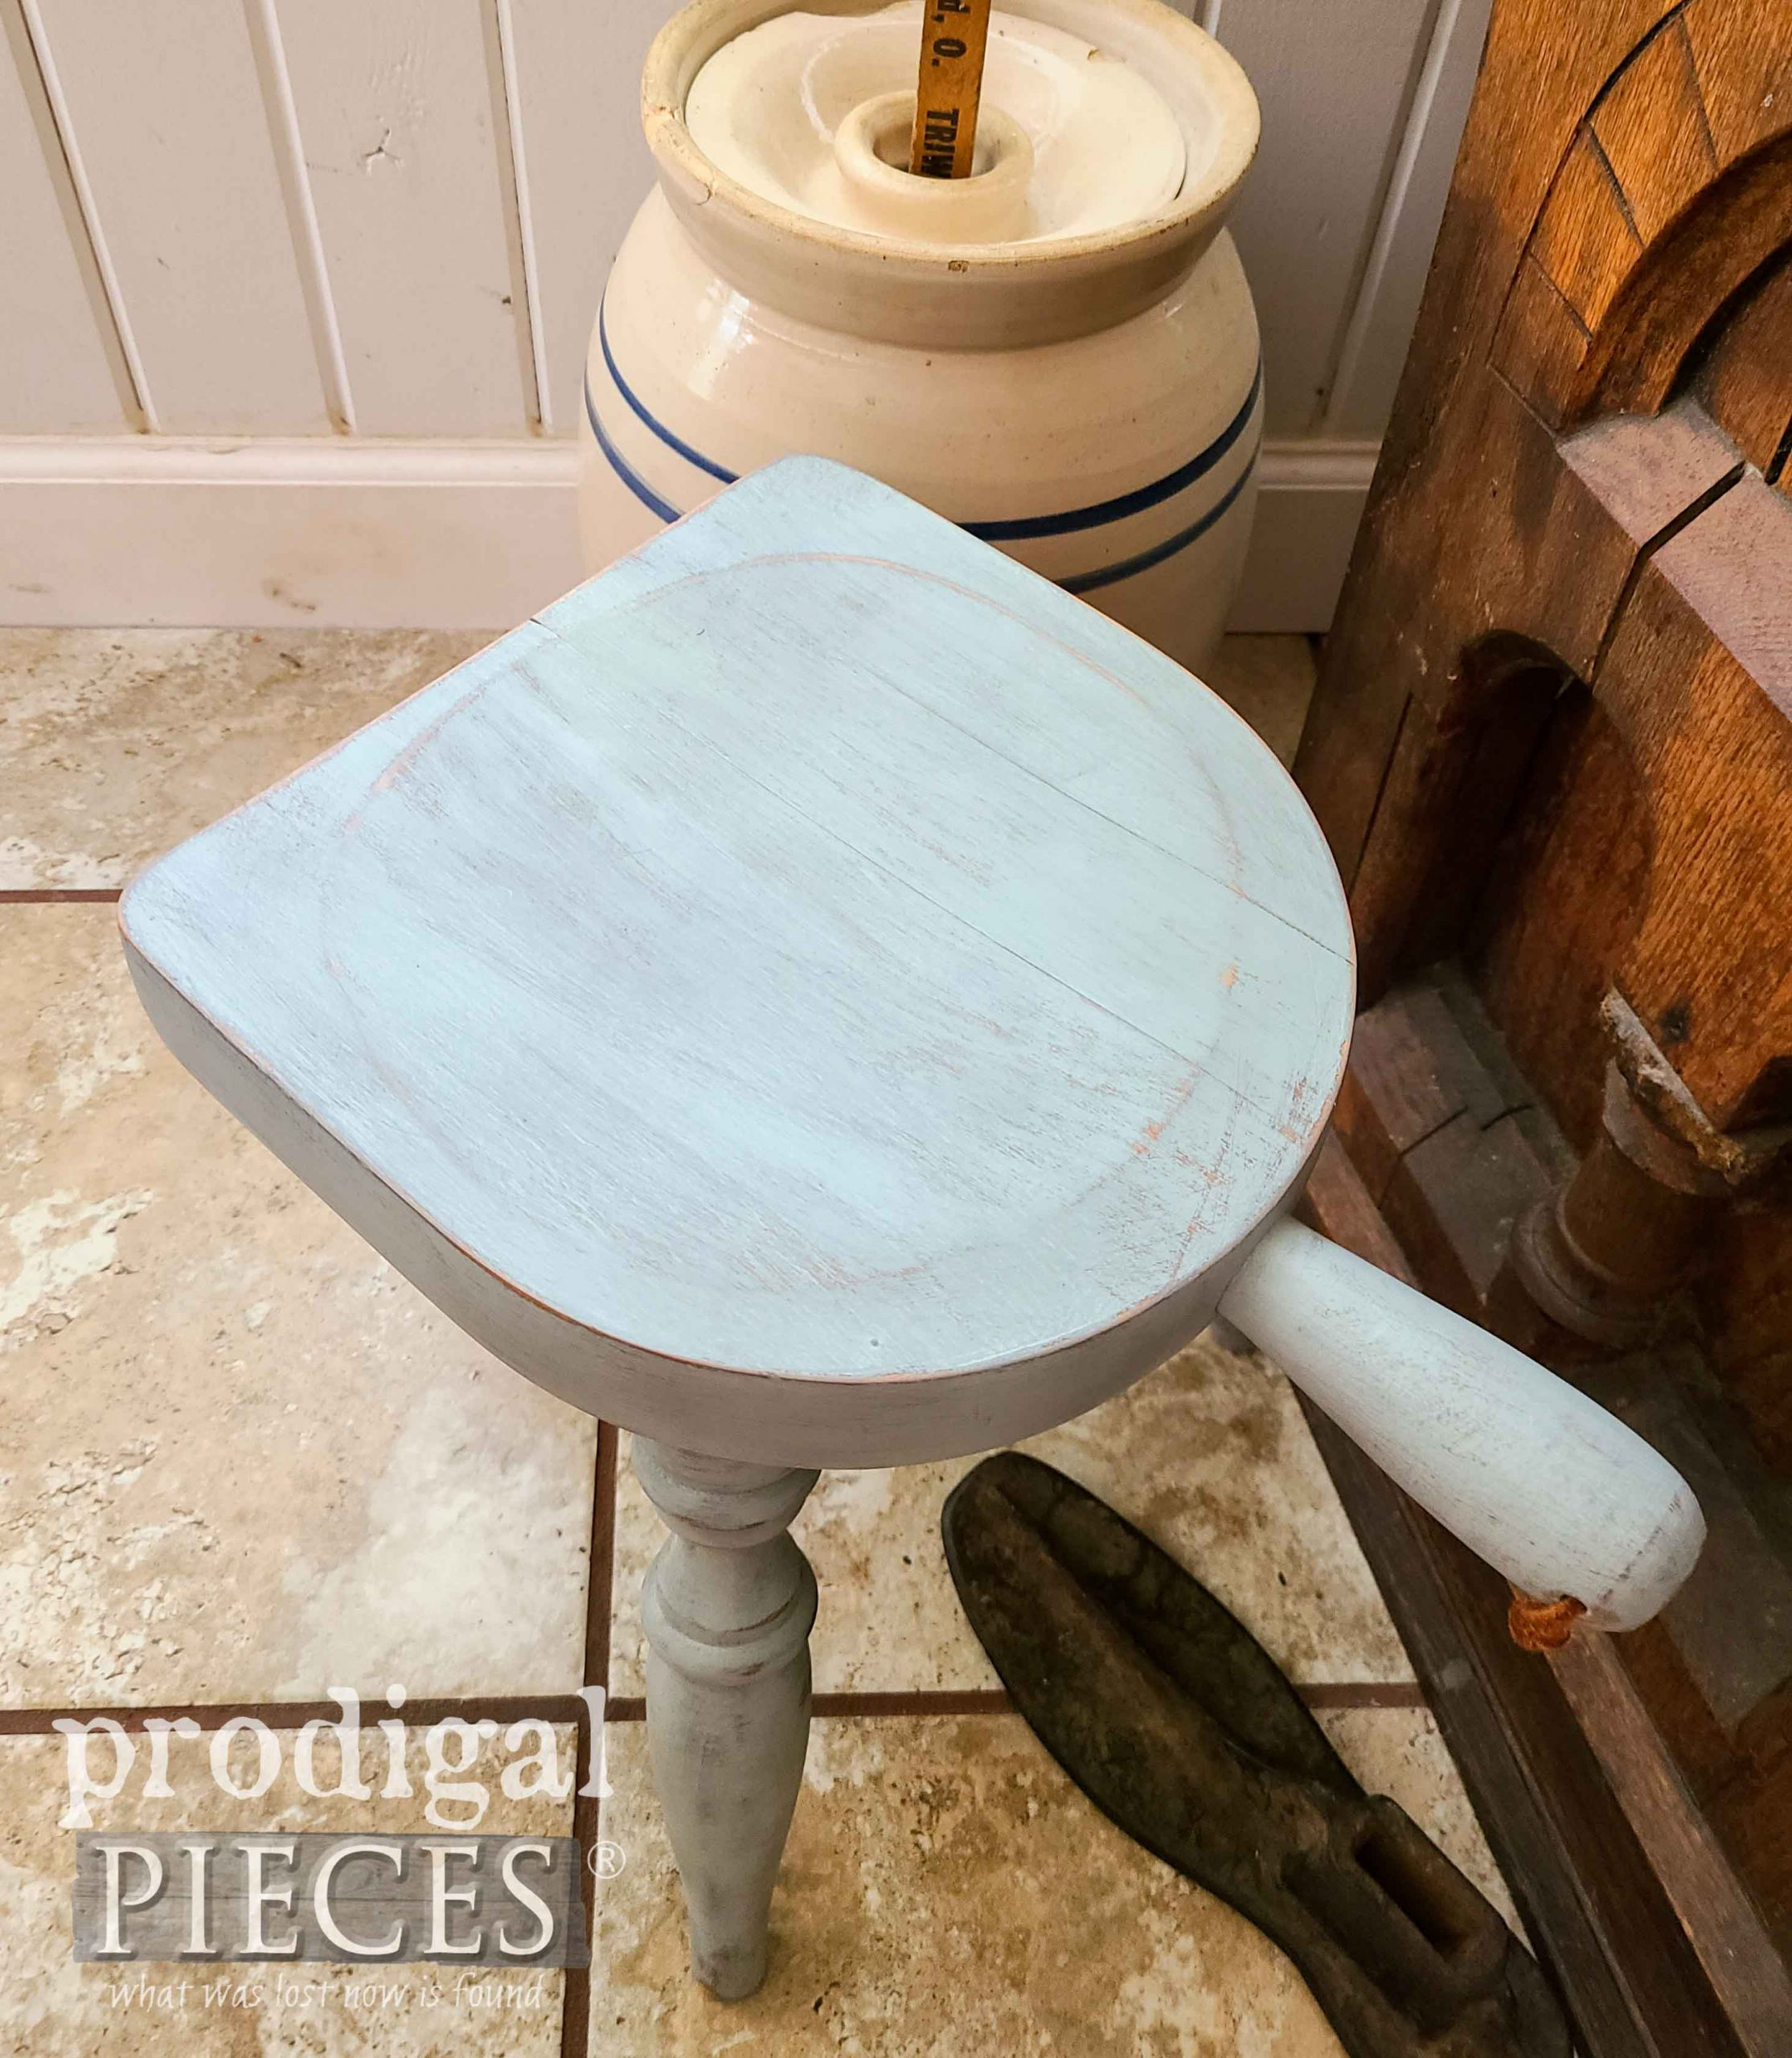 Top of Farmhouse Milking Stool for Mini Thrift Store Makeovers by Prodigal Pieces | prodigalpieces.com #prodigalpieces #diy #home #farmhouse